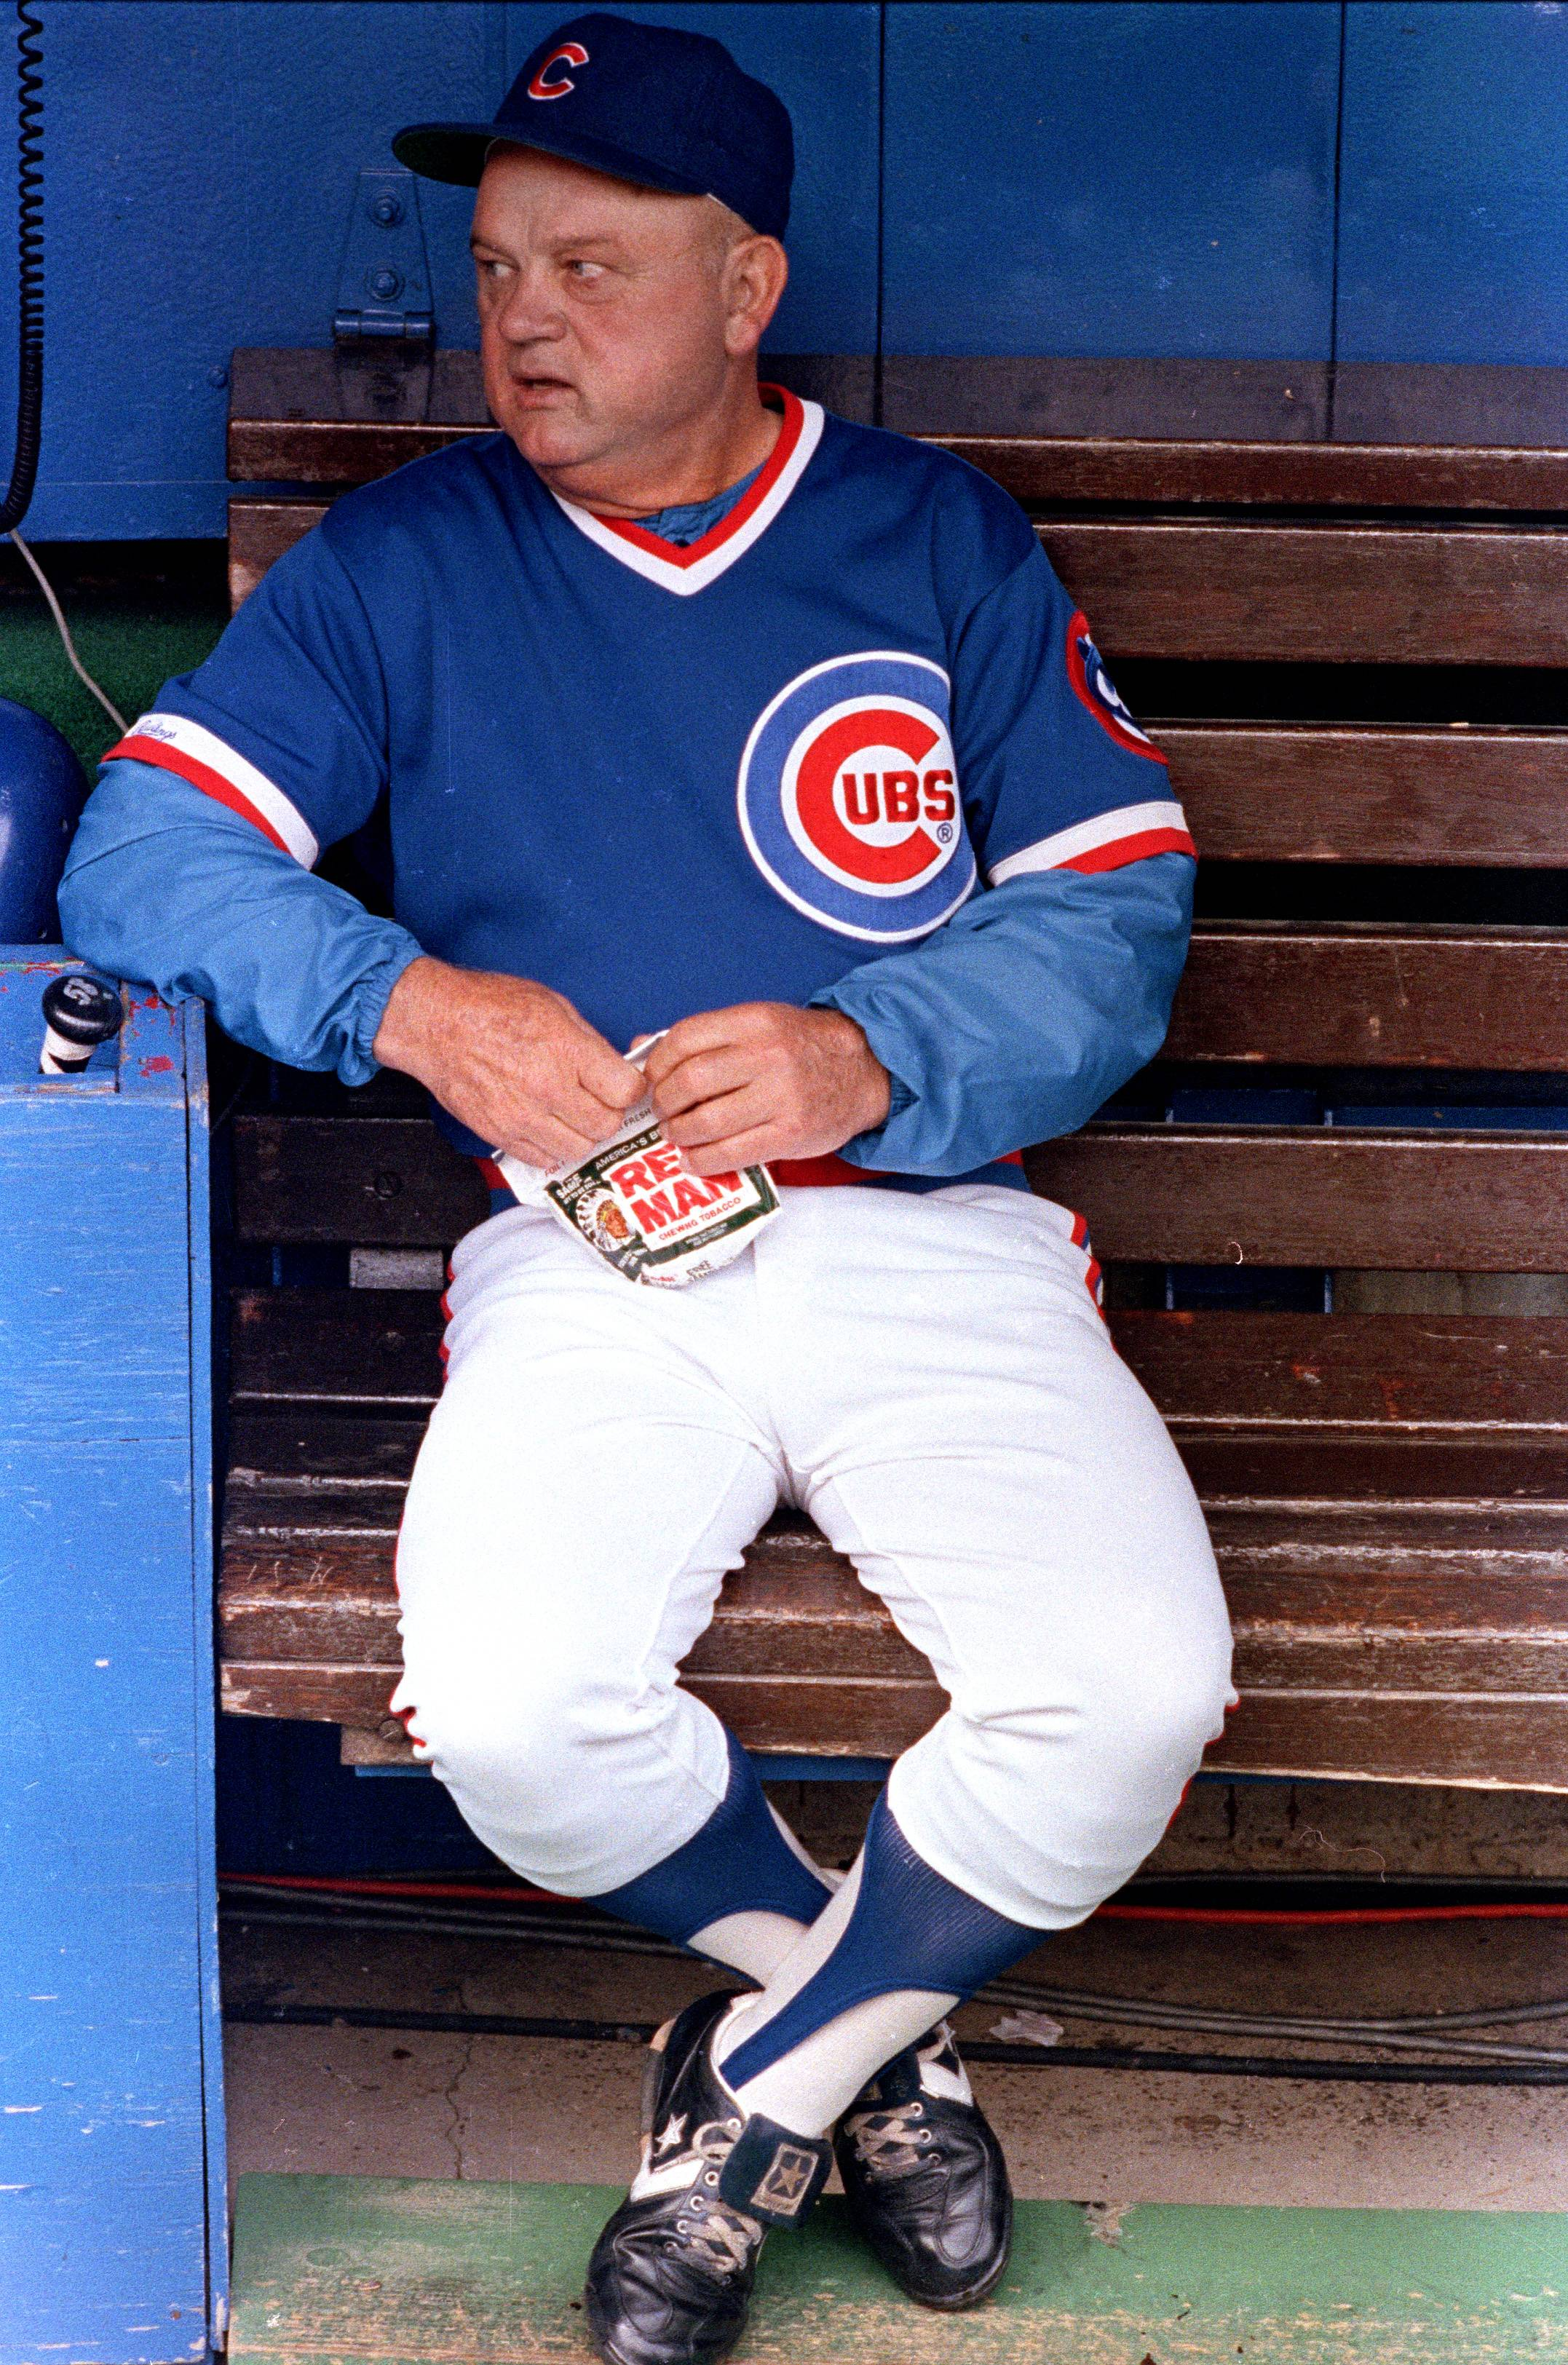 In this Sept. 30, 1989 file photo, Cubs manager Don Zimmer sits in the dugout before a game against the Cardinals in St. Louis. Zimmer, a popular fixture in professional baseball for 66 years as a manager, player, coach and executive, died Wednesday. He was 83.